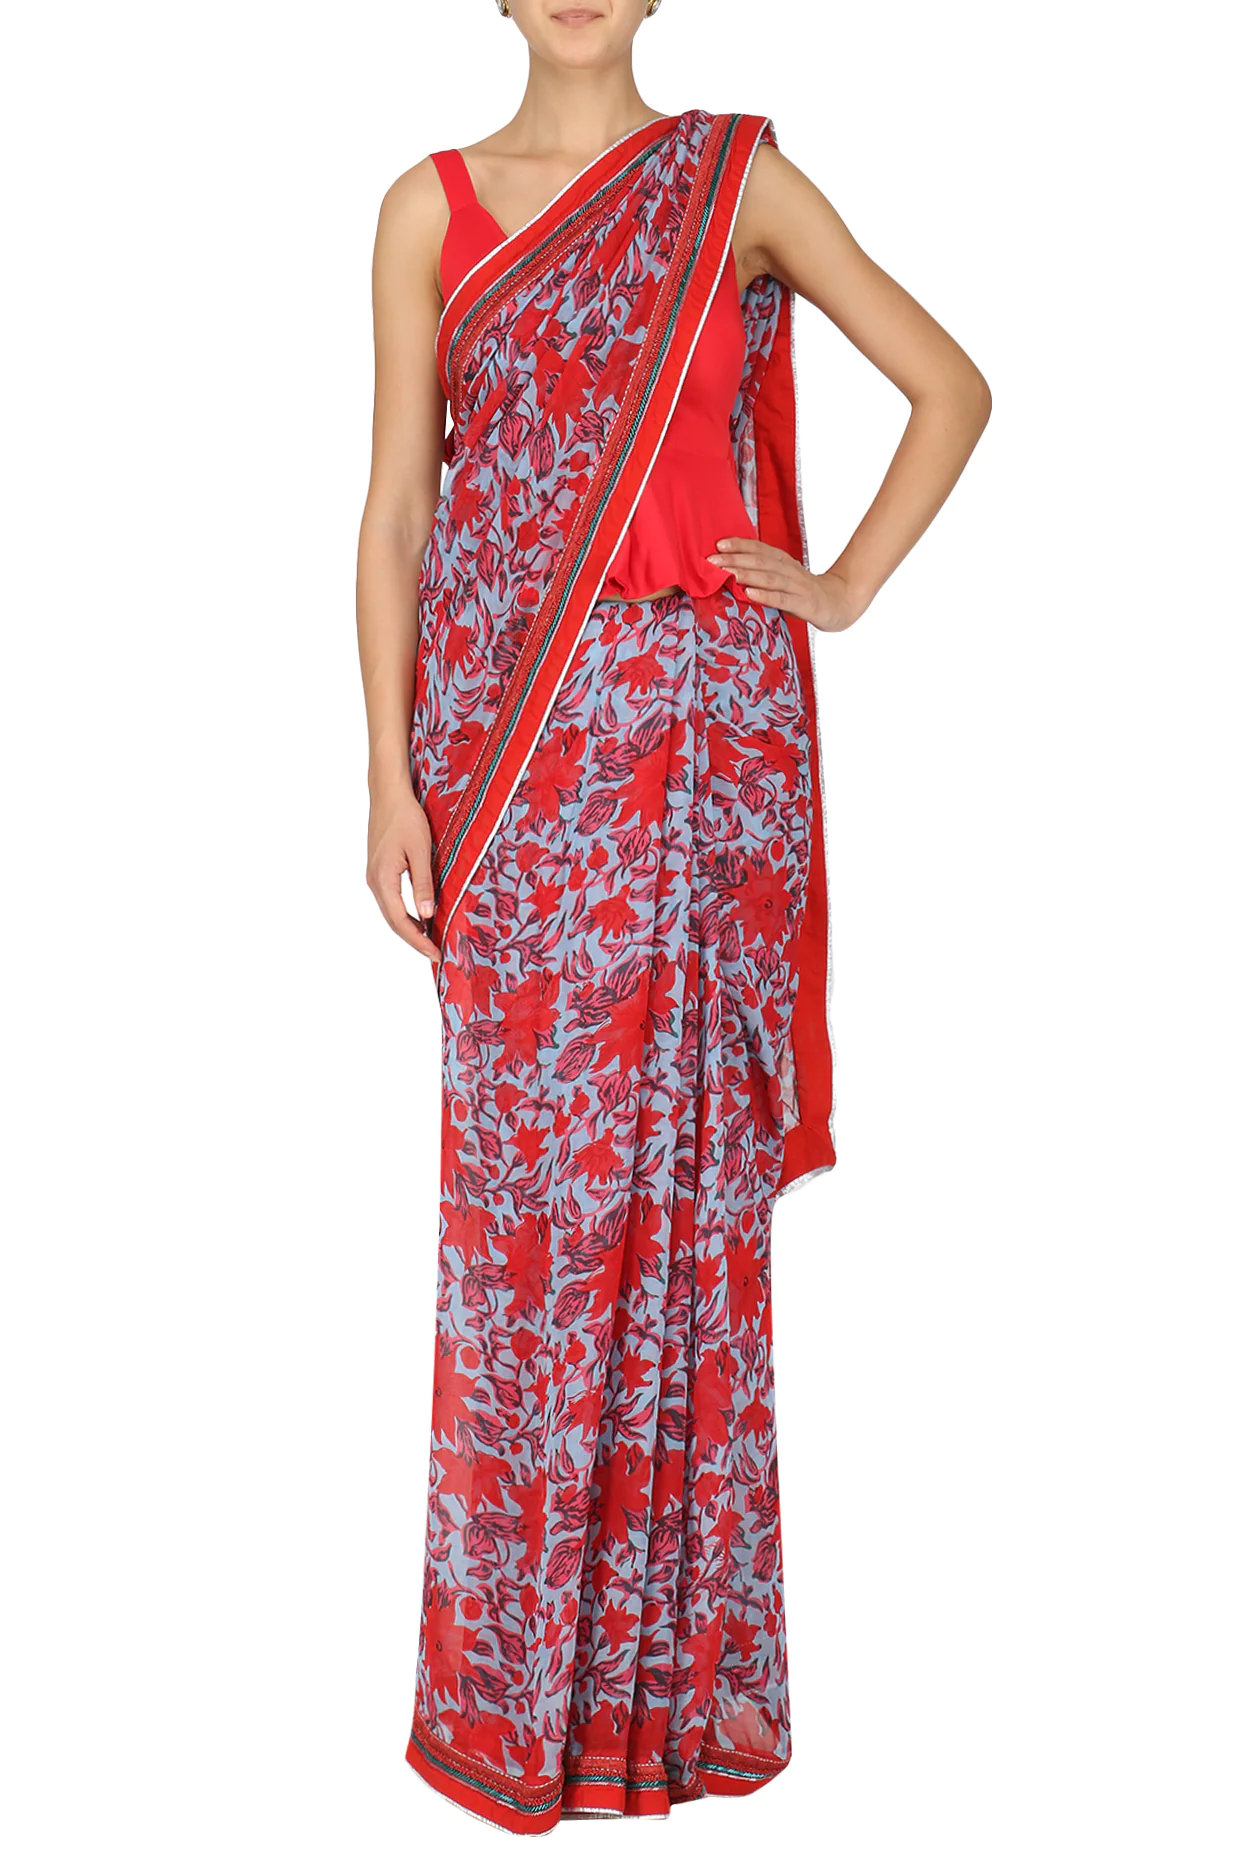 Red and Blue Floral Printed Saree with Peplum Blouse